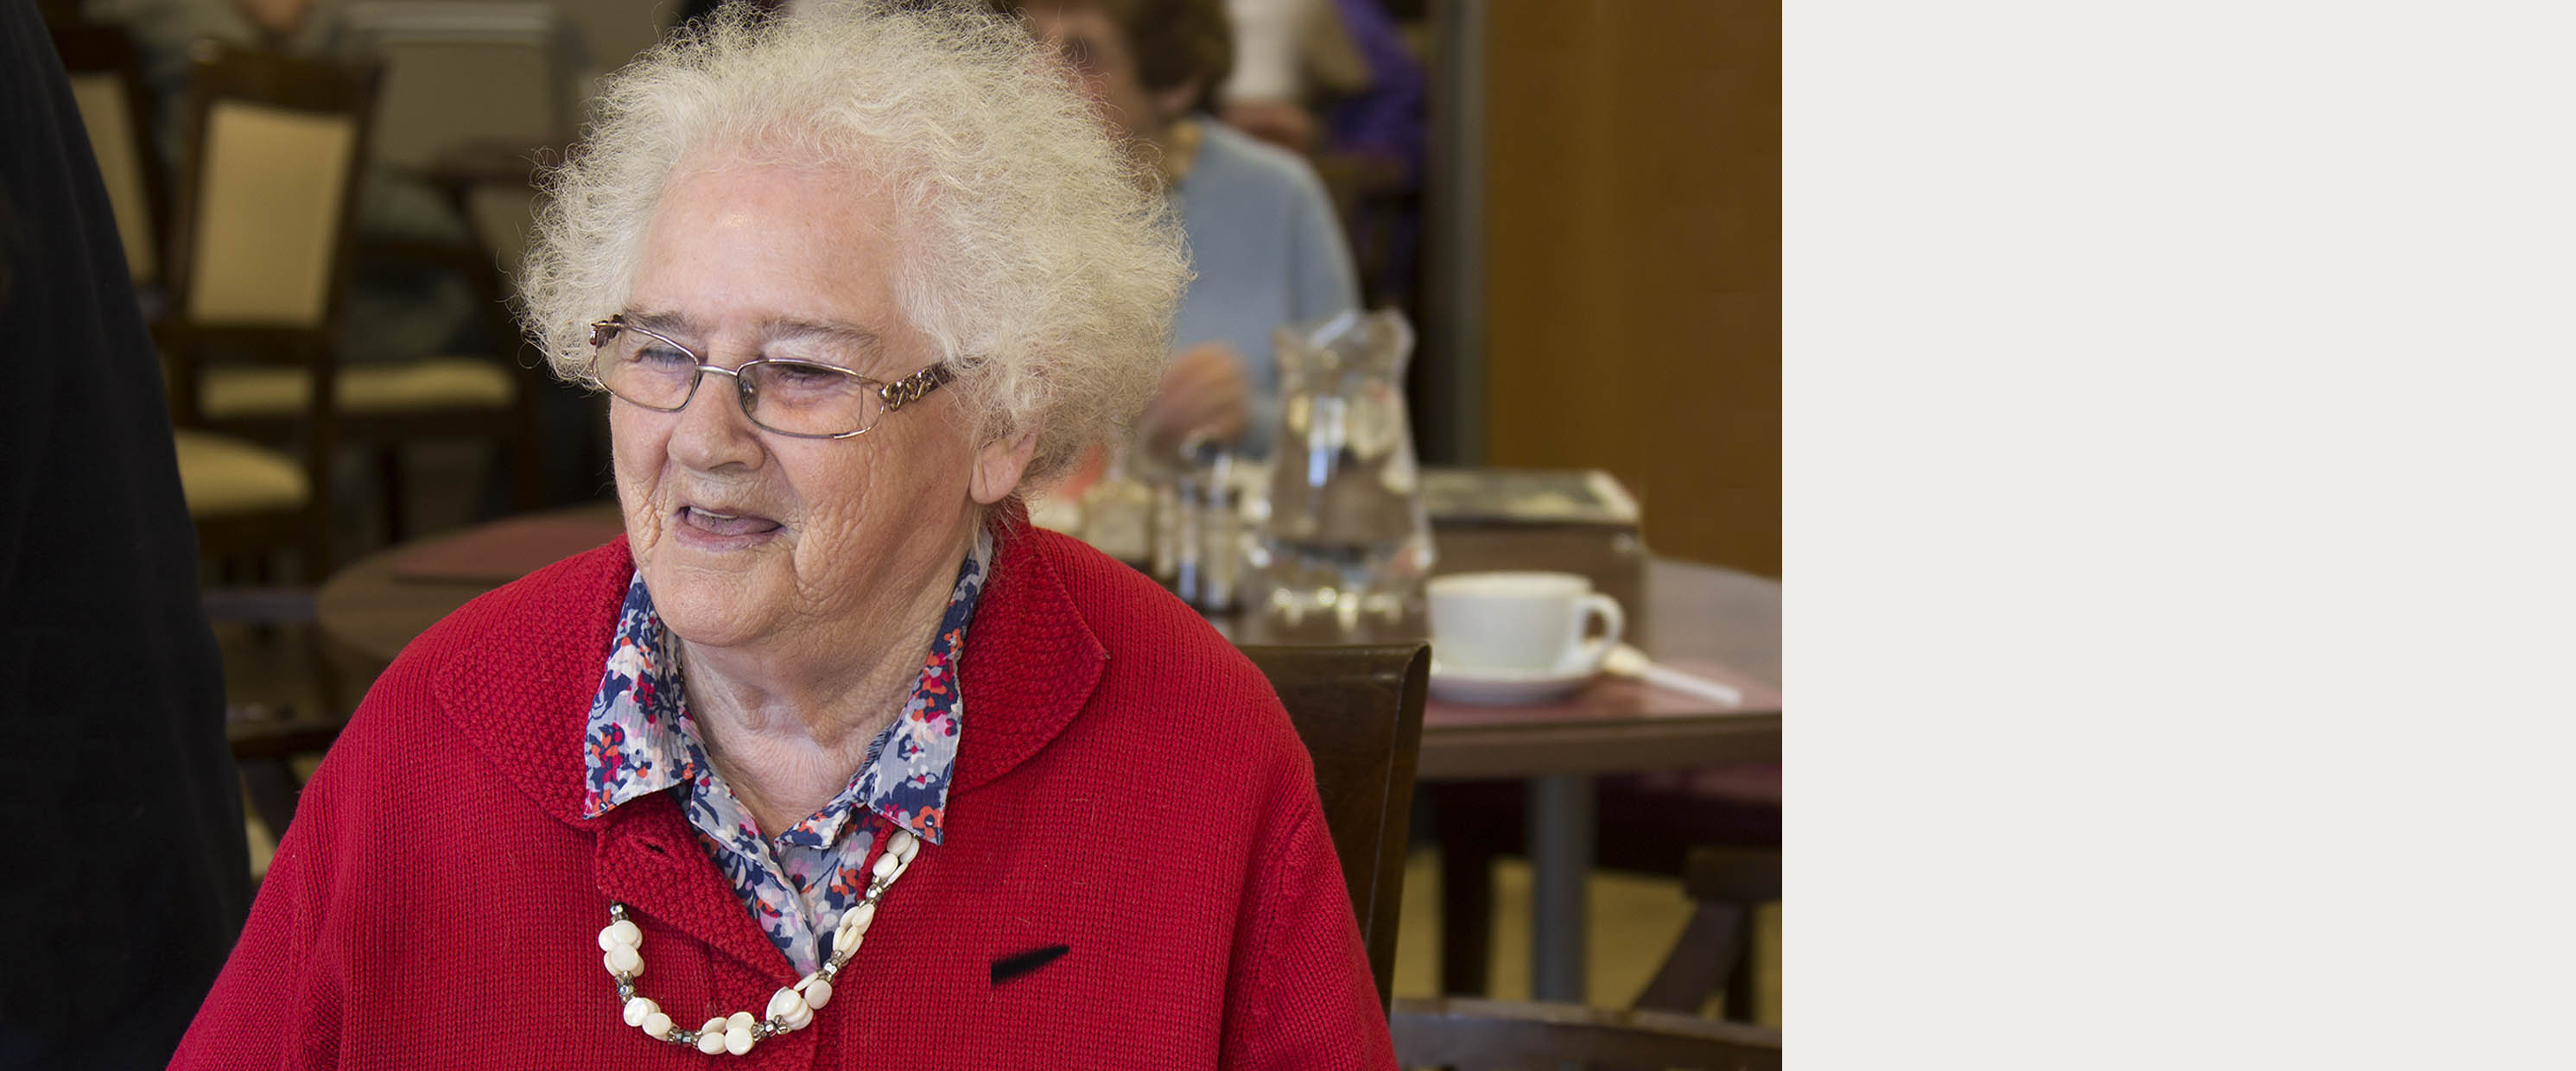 Older woman has a big smile on her face as she sits at a table in a community centre.